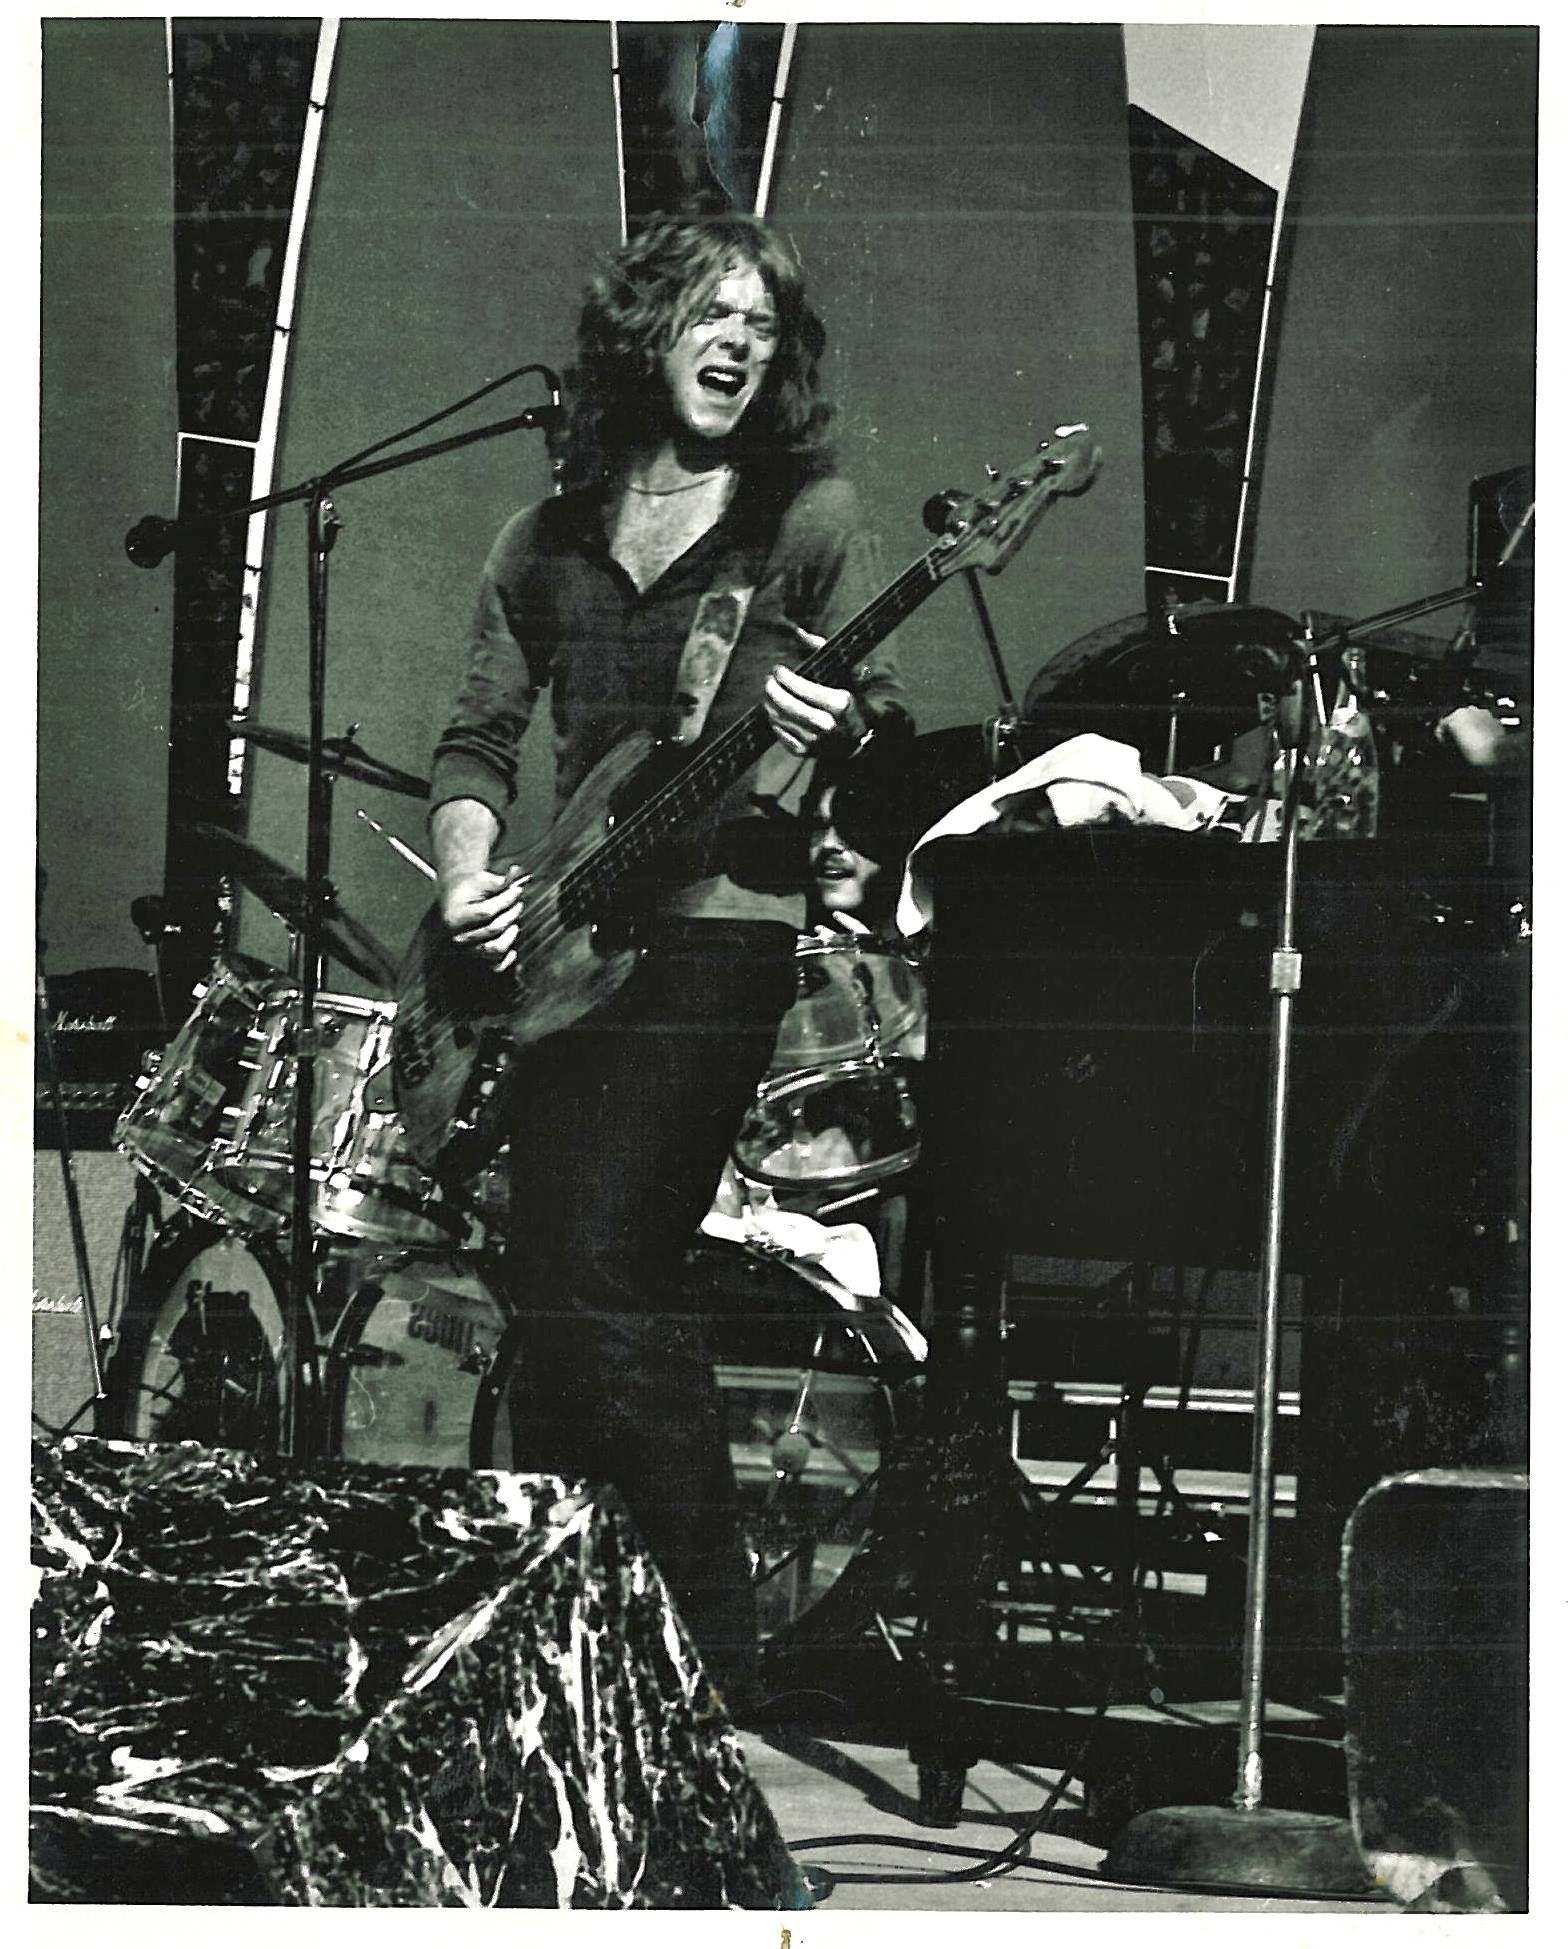 Early 80's with my pawn shop Jazz Bass circa '68